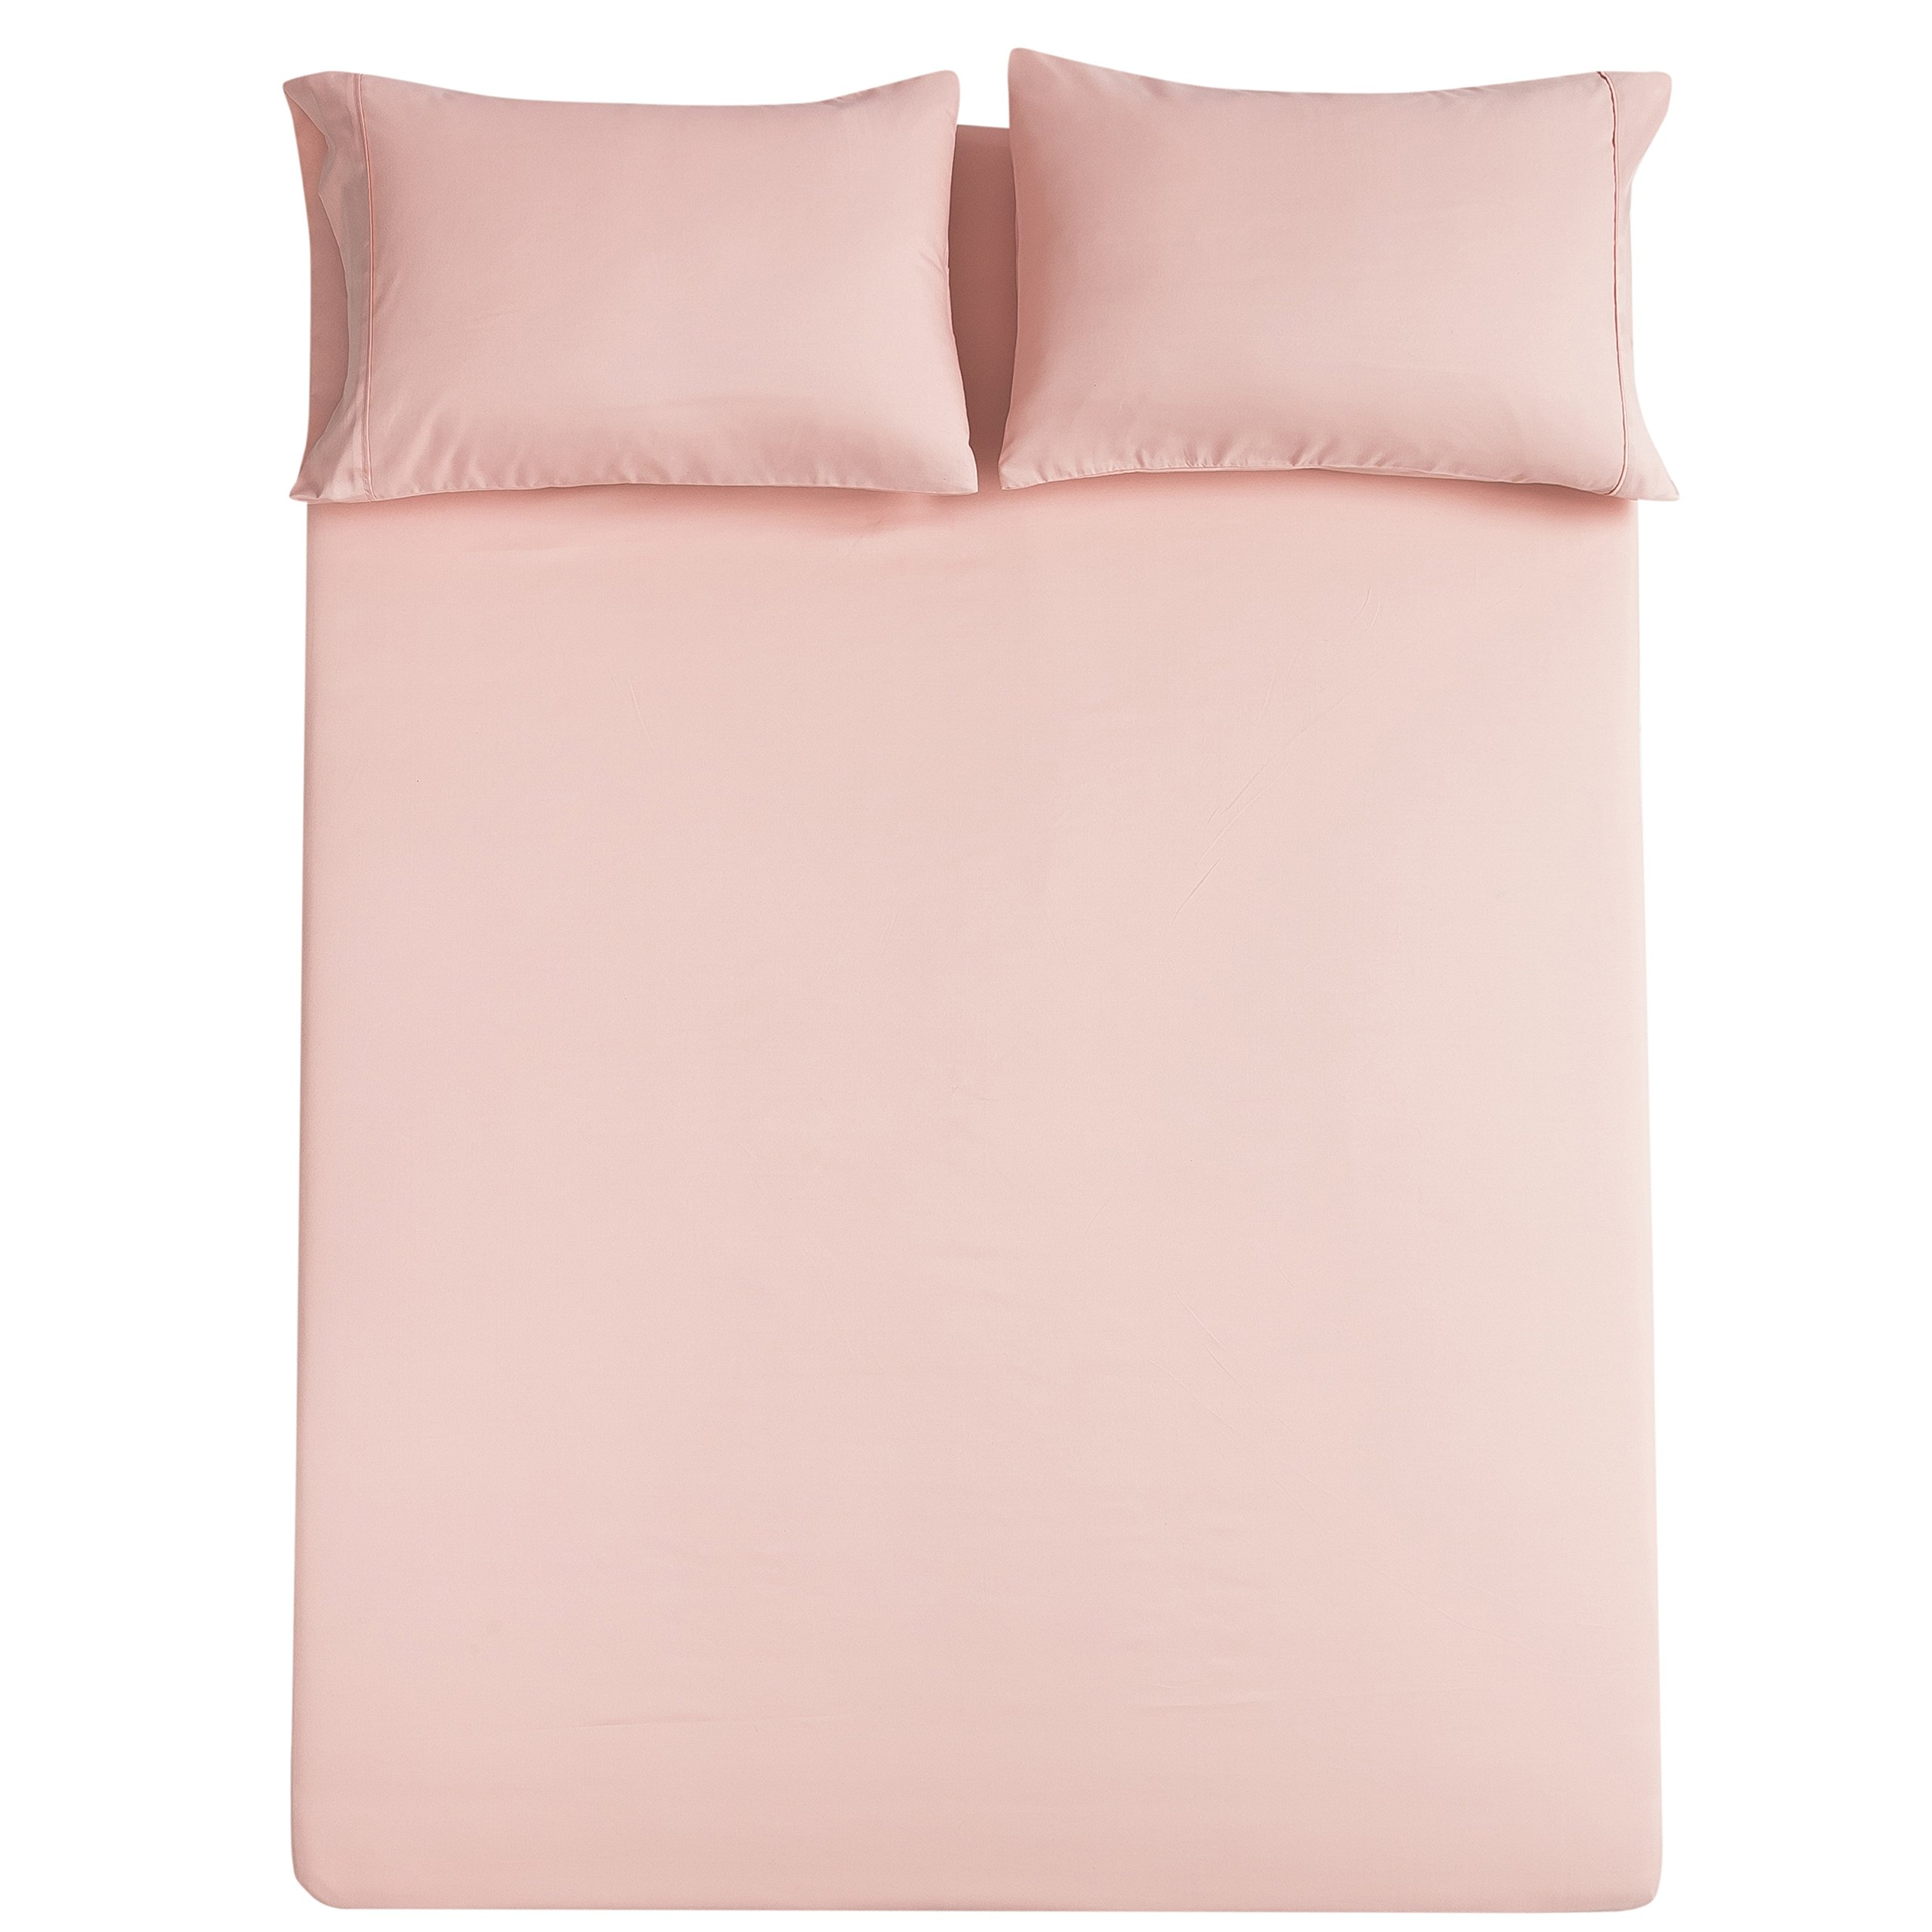 Mohap Bed Sheet Set 4 Pieces Brushed Microfiber Luxury with Deep Pocket Soft Bedding Fade and Stain Resistant Queen, Pink